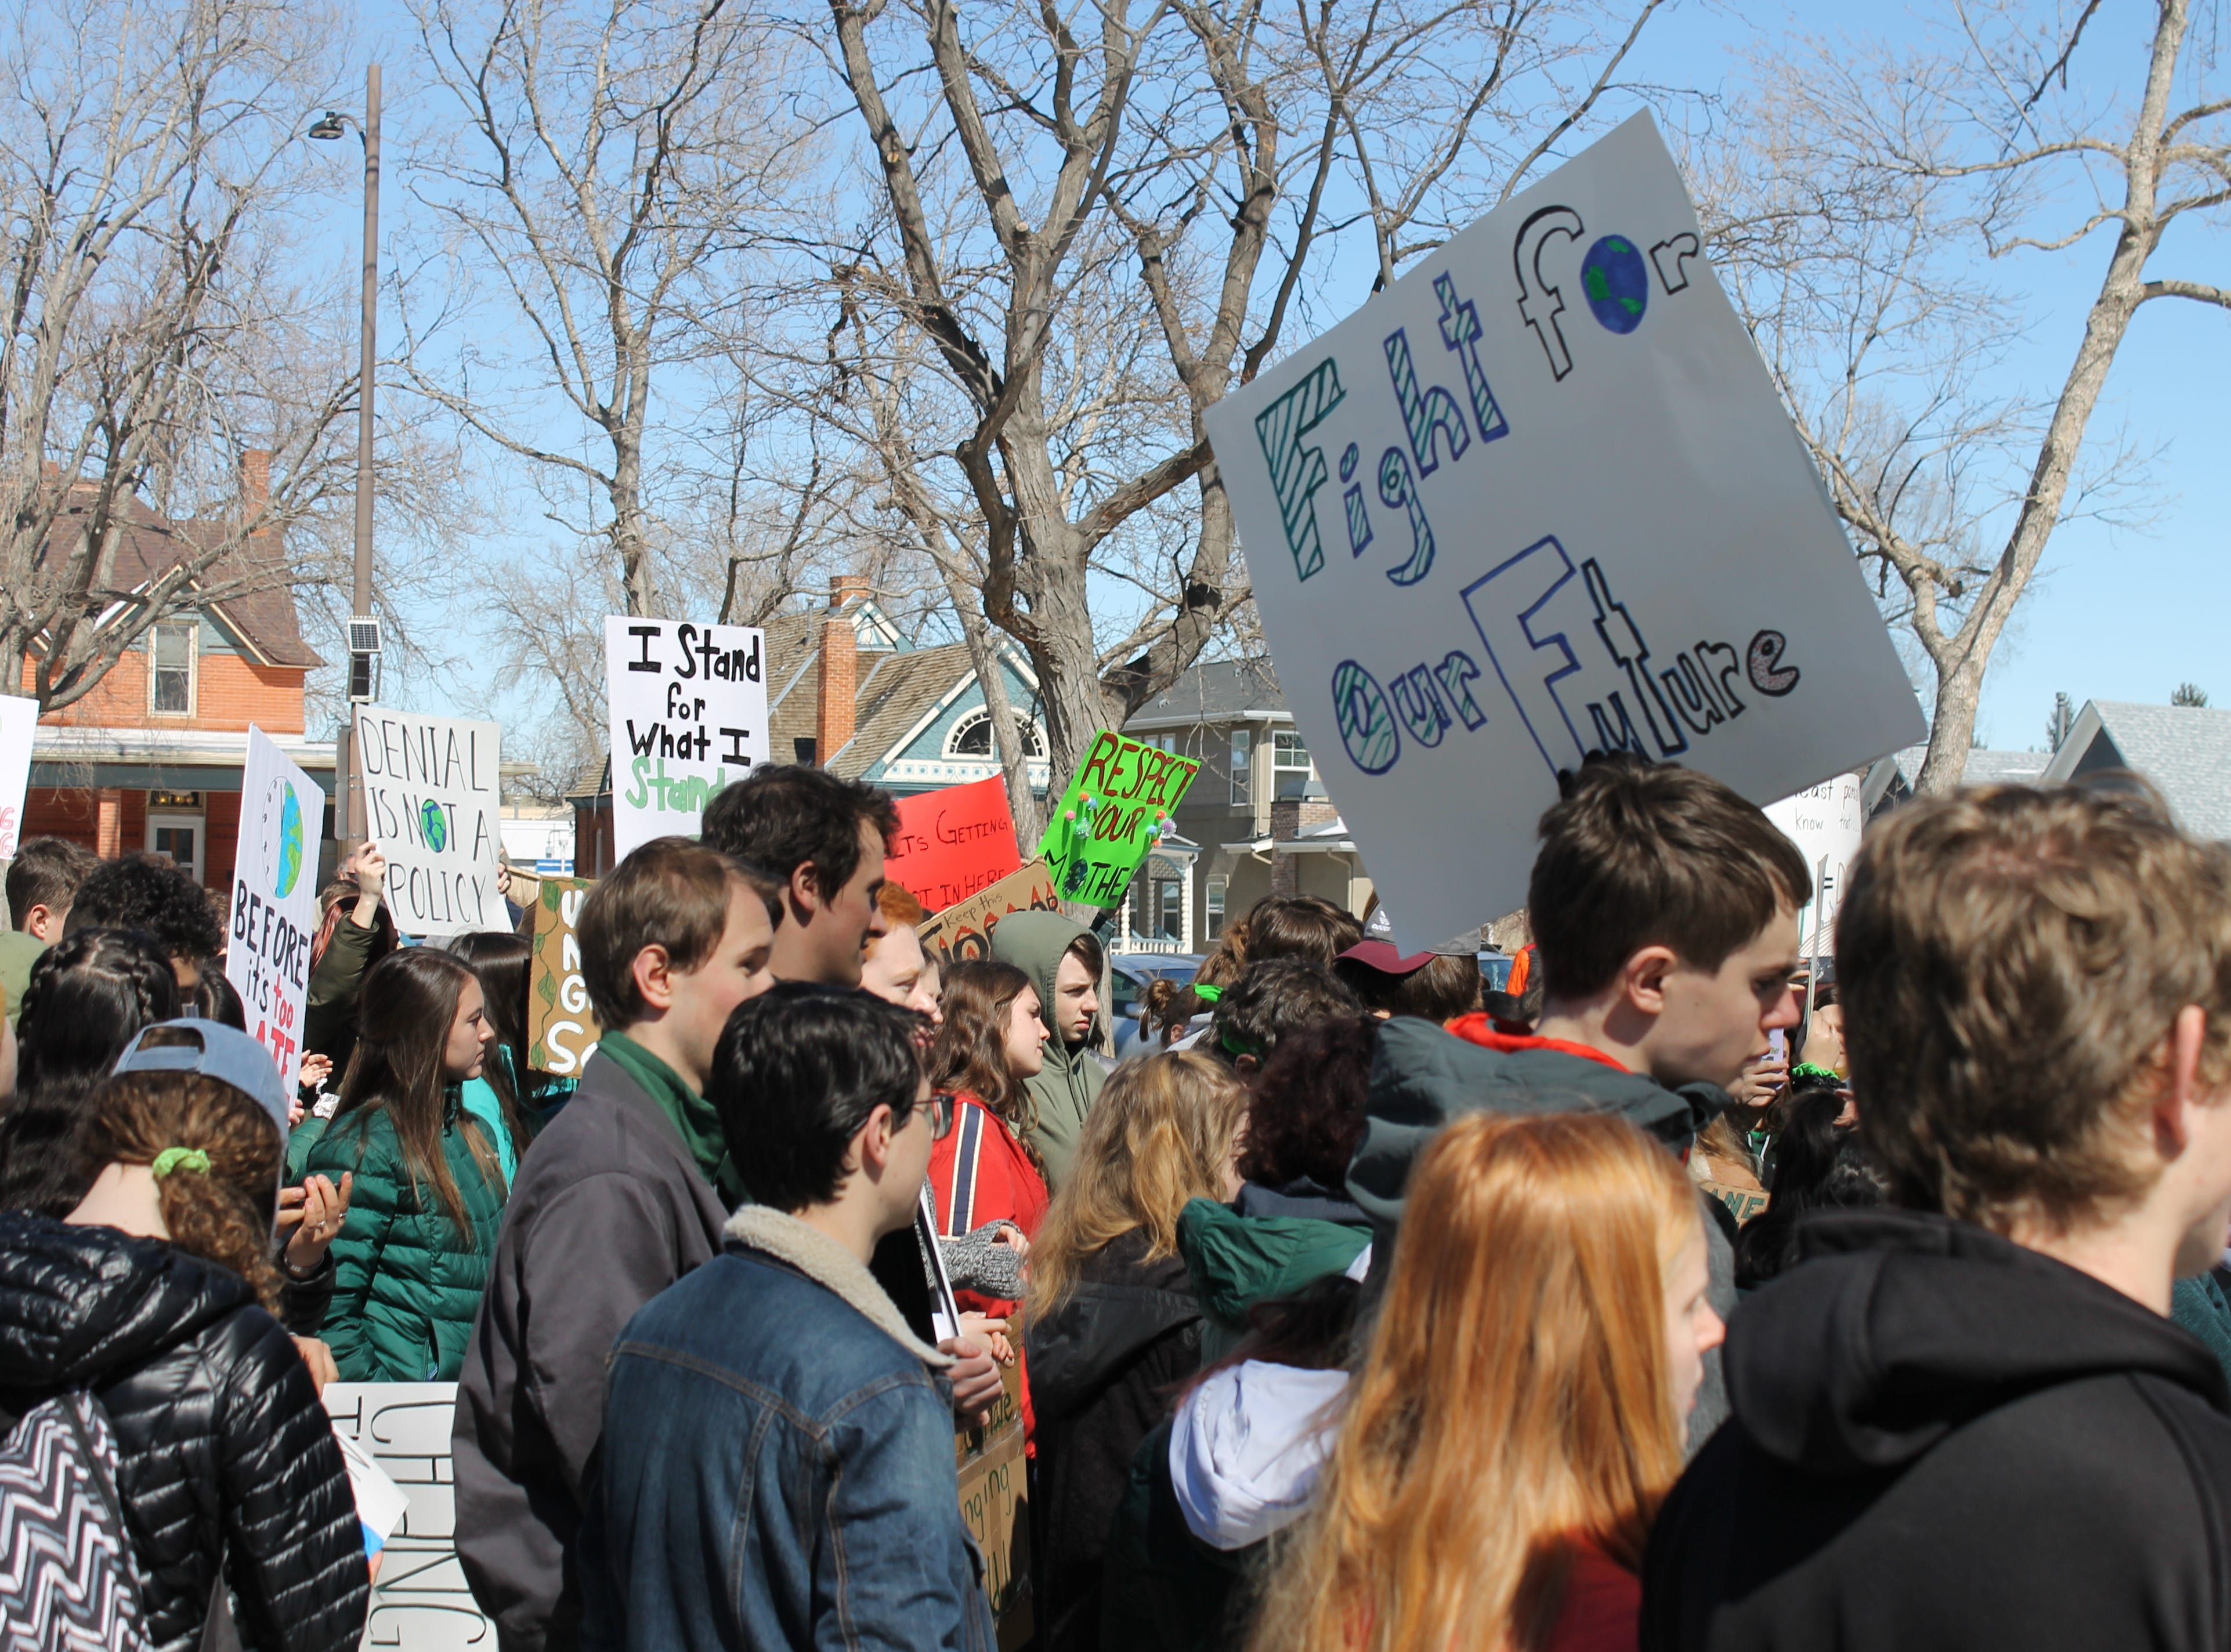 Hundreds of students gathered at Library Park in Fort Collins March 15, 2019 during the school day. They ditched class to protest for better climate policy.